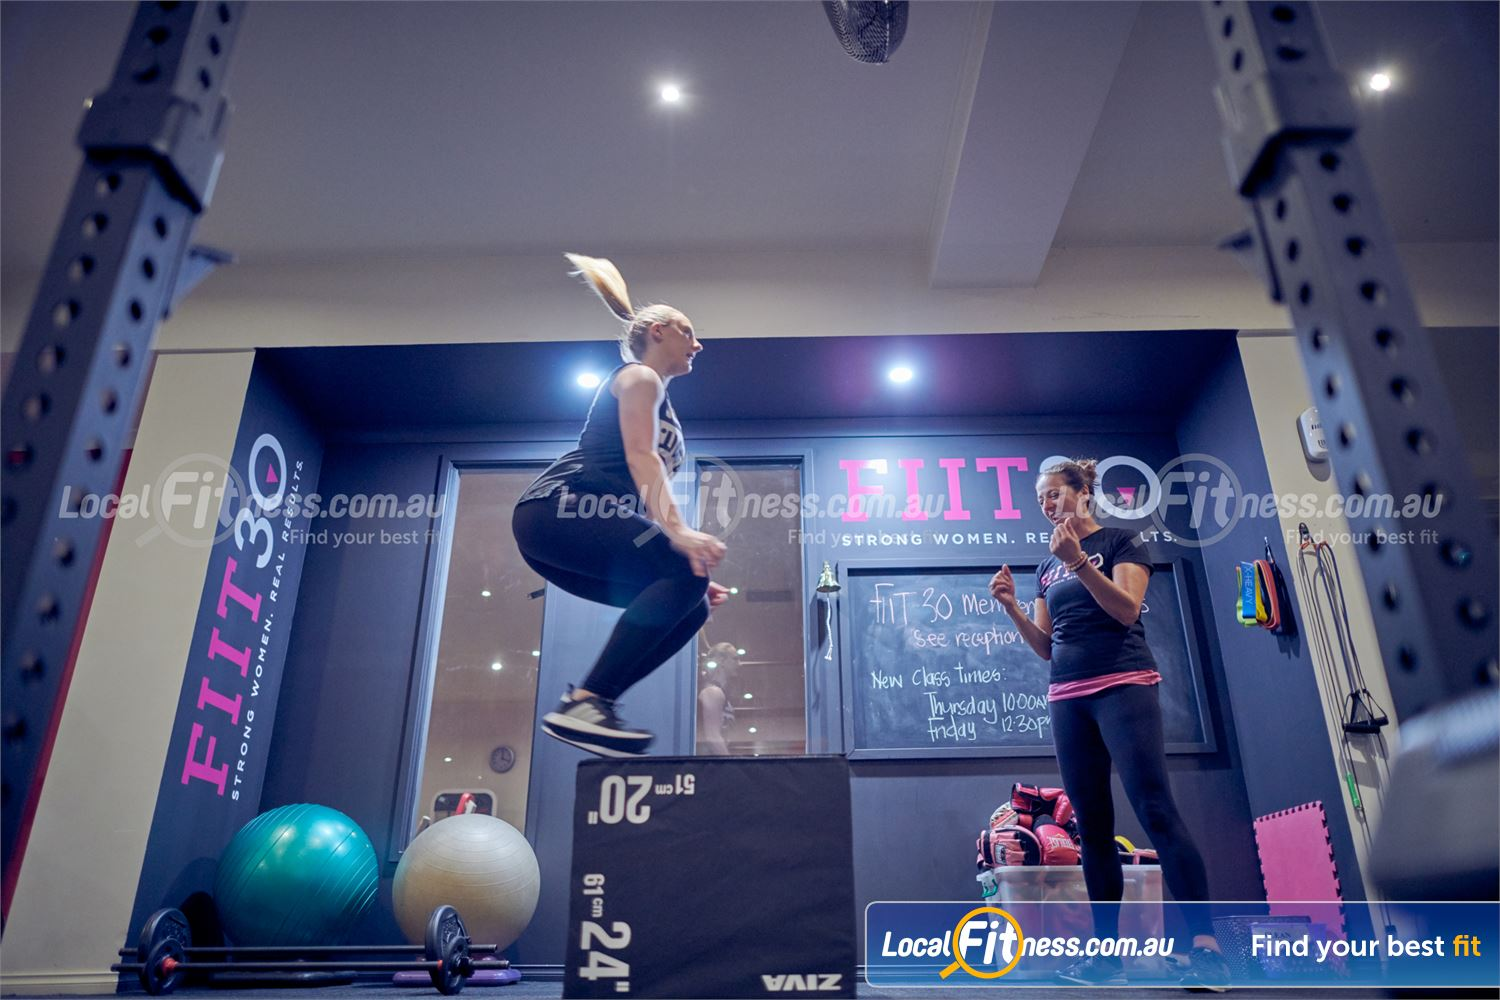 Fernwood Fitness Near Templestowe Lower Fernwood FIIT30 in Bulleen is our Functional Intense Interval Training classes.